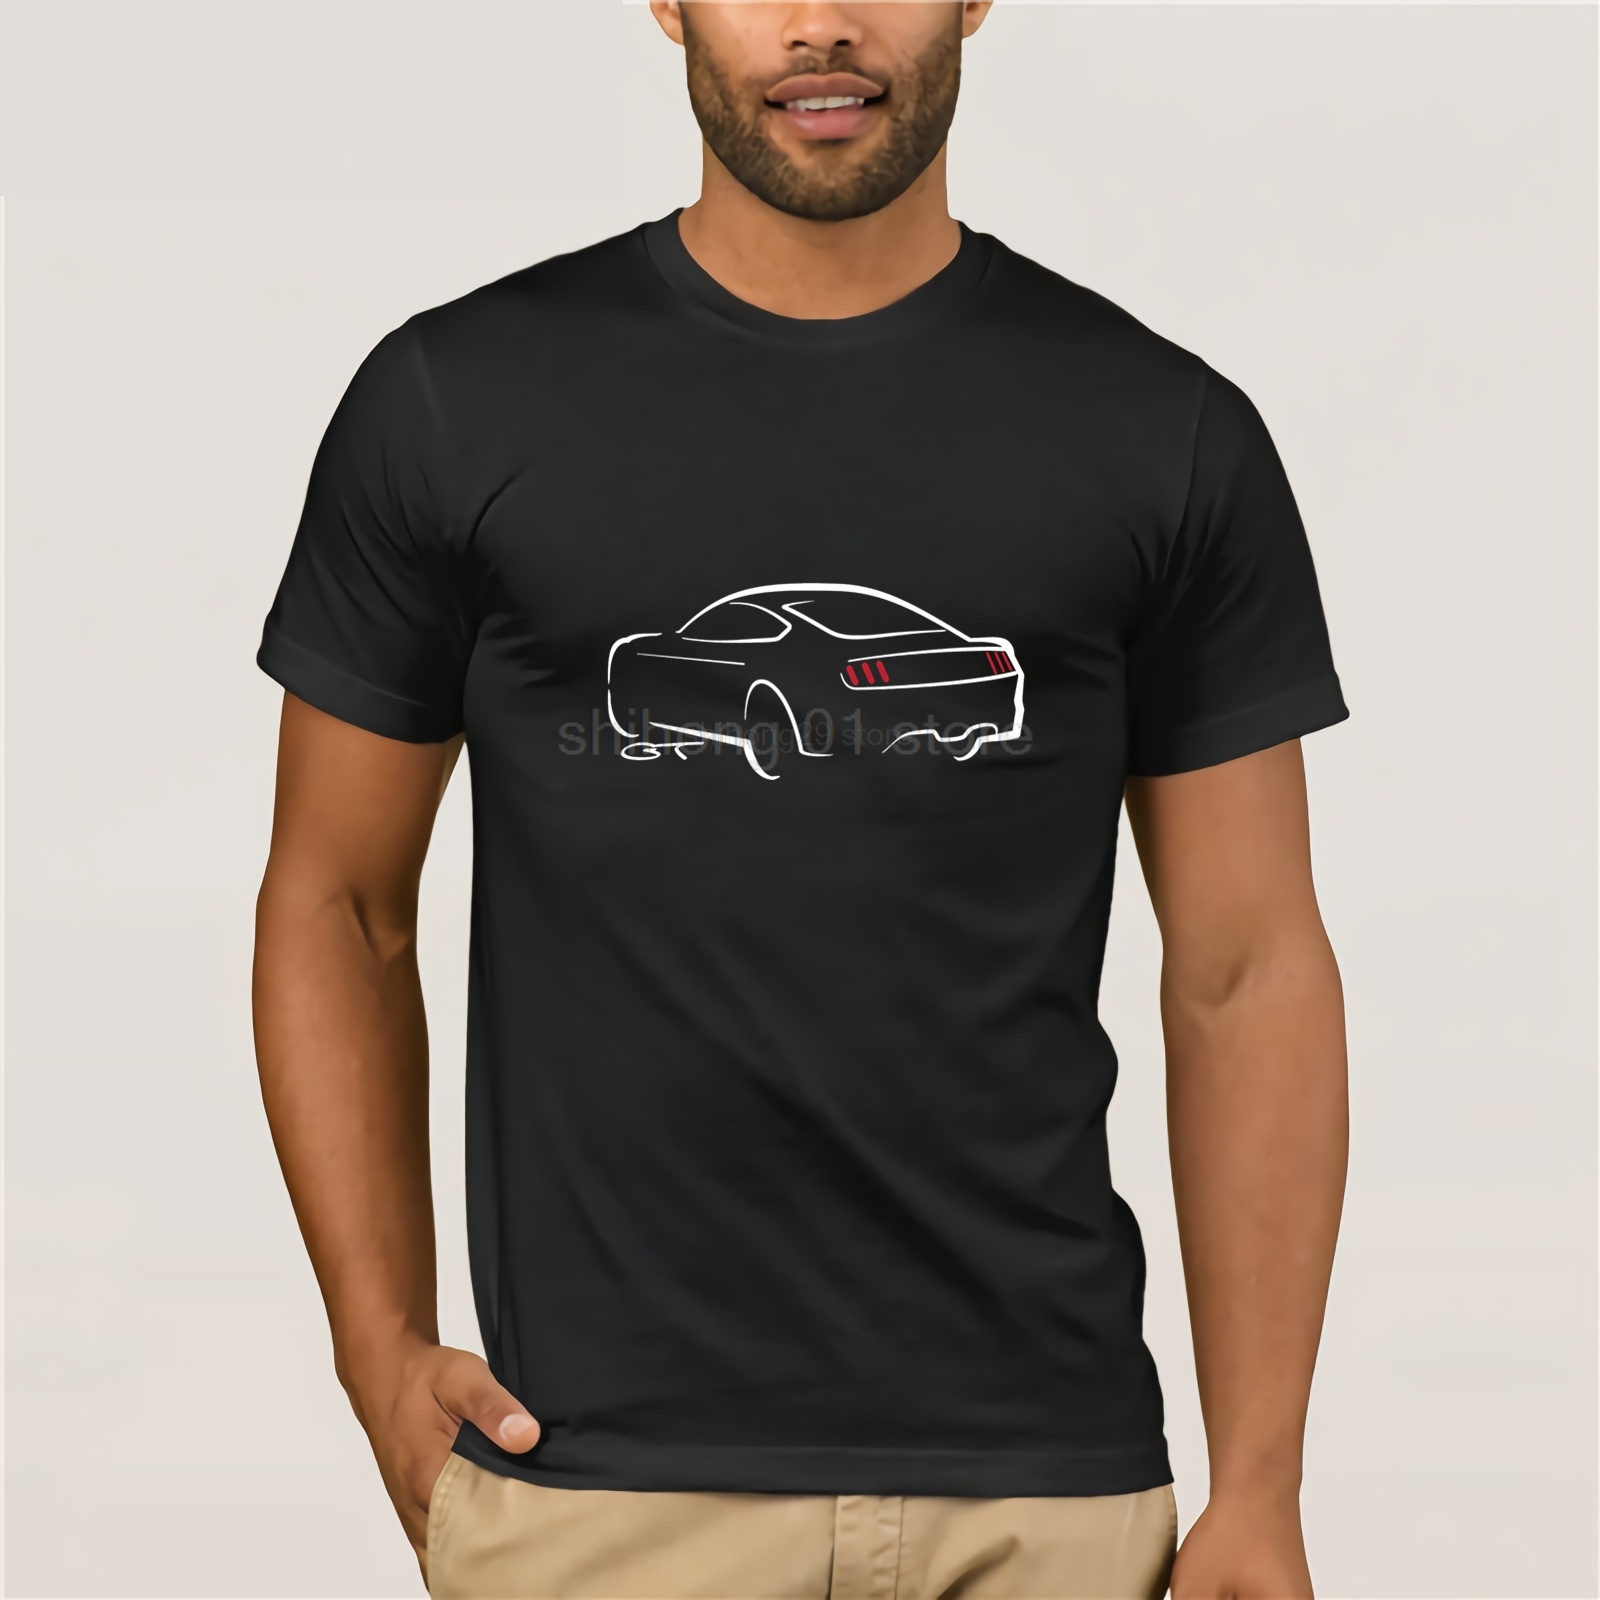 2019 Summer High Quality Tees Classic American Car Fans Mustang Gt Sketch Design <font><b>T</b></font> <font><b>Shirt</b></font> <font><b>V8</b></font> American Muscle Car Printed <font><b>T</b></font> <font><b>Shirts</b></font> image